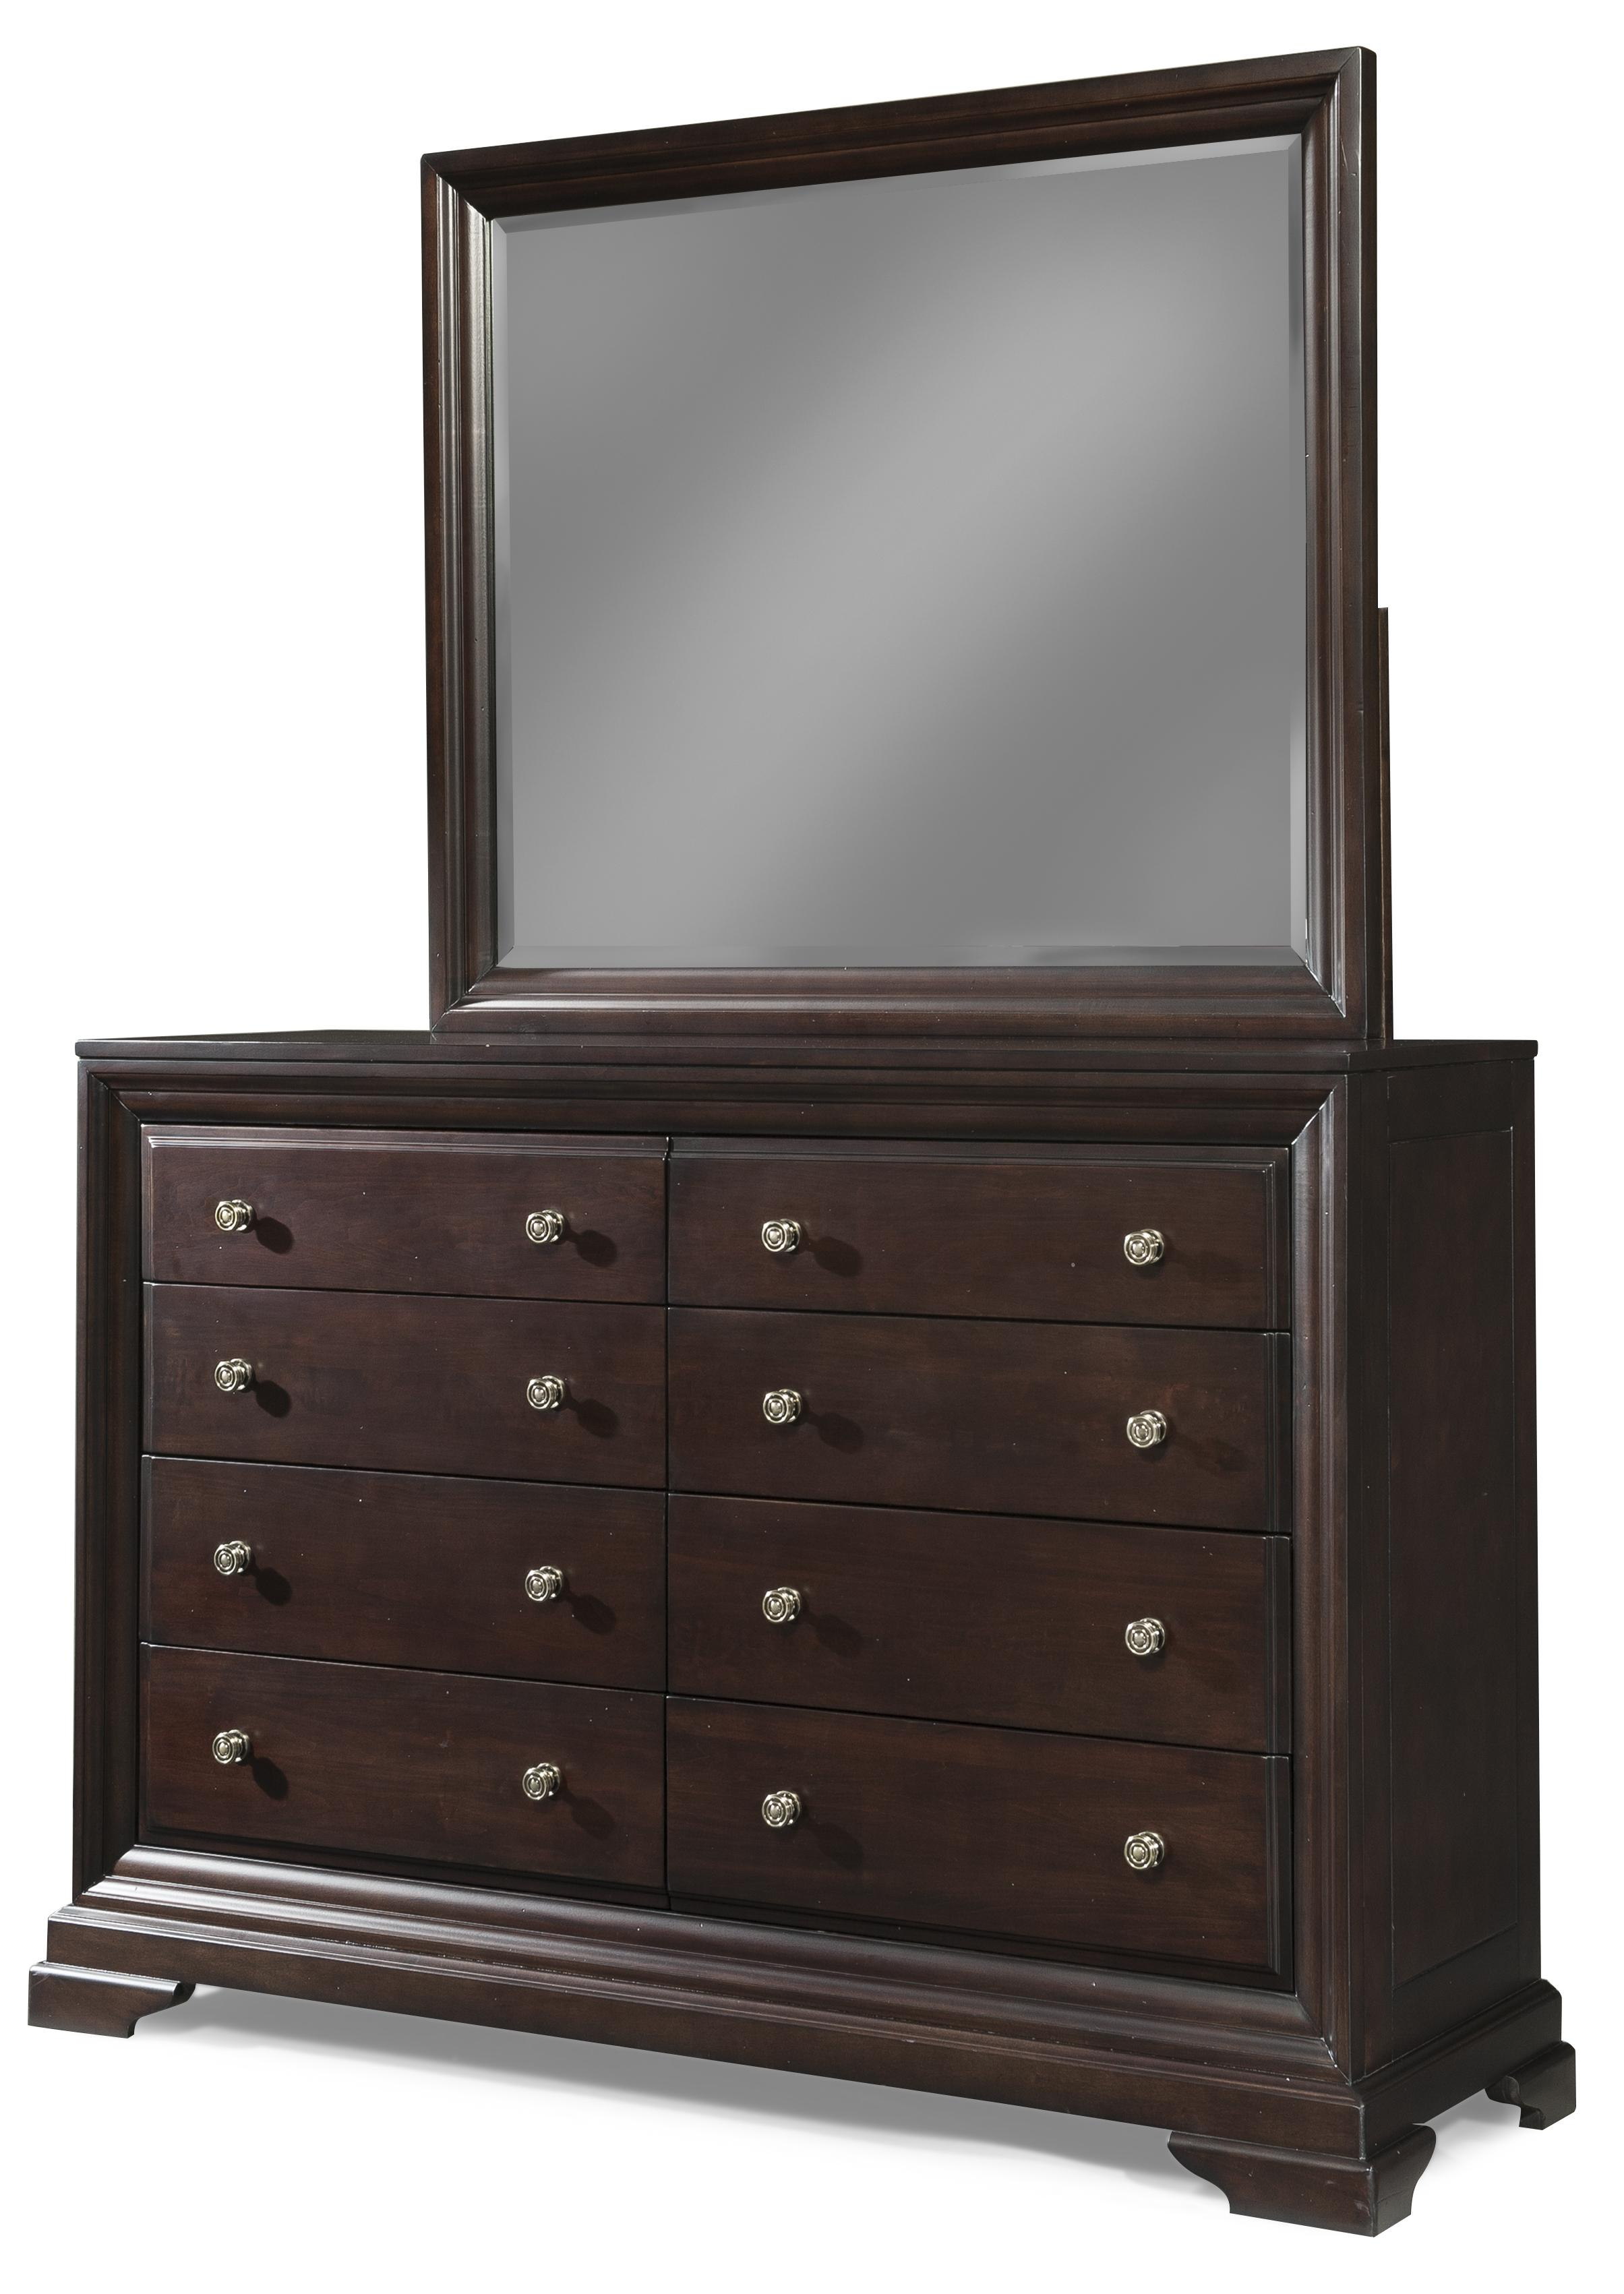 Cresent Fine Furniture Newport Dresser & Mirror Set - Item Number: 1801+1802